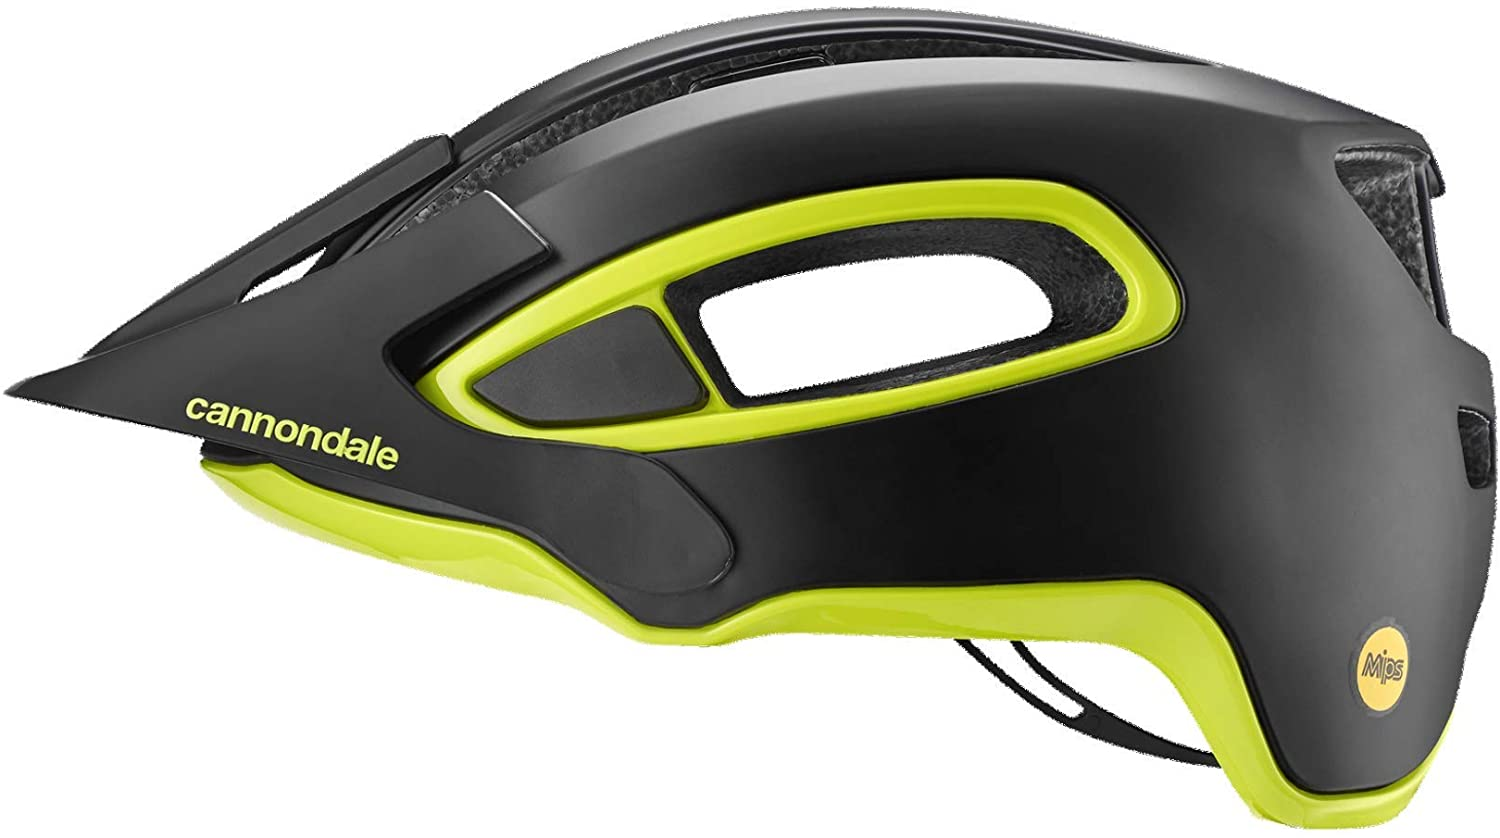 Cannondale Adult Hunter MIPS Bicycle Helmet - Black with Volt (Black with Volt - L/XL)-B07RYPHPFS, one colorone size